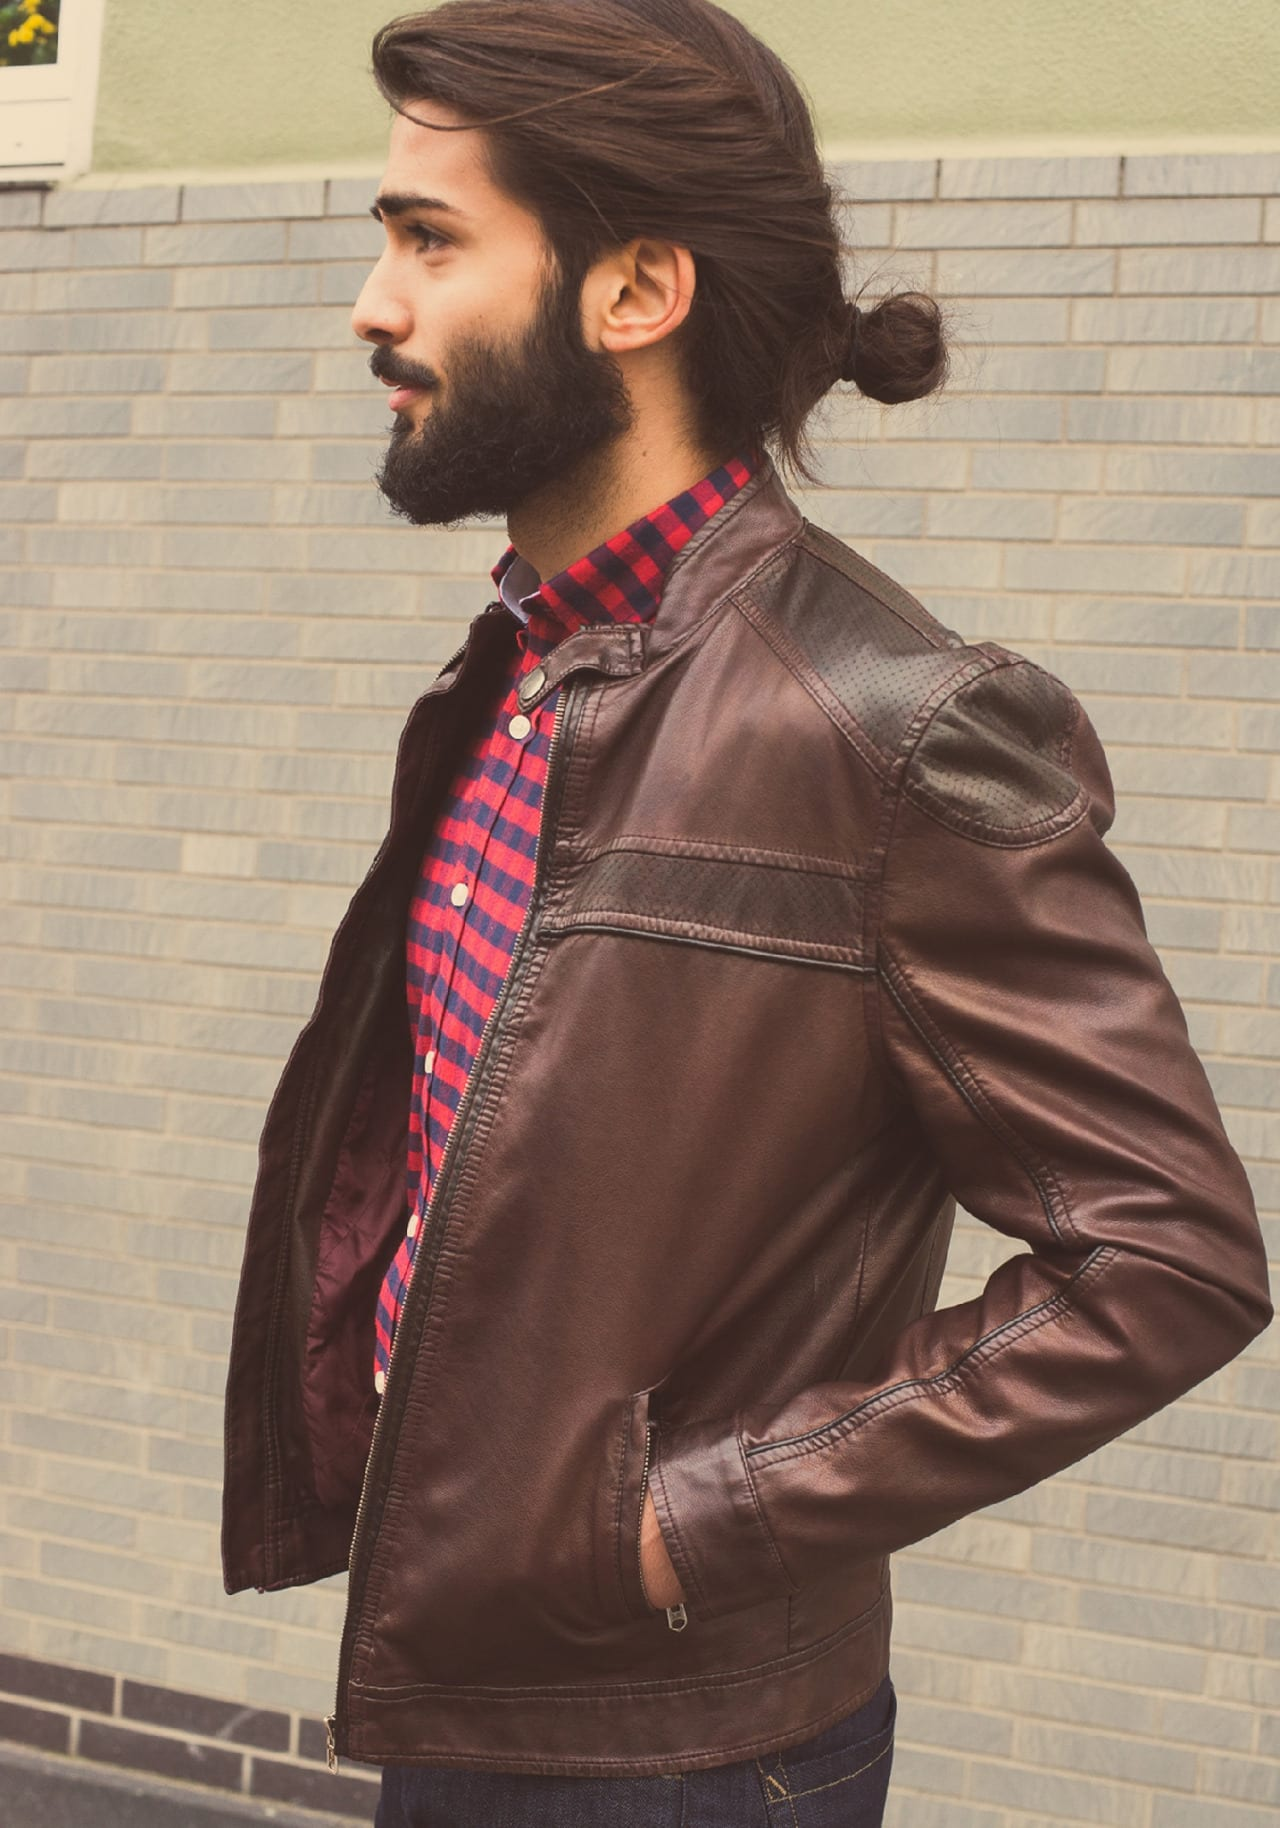 low man bun